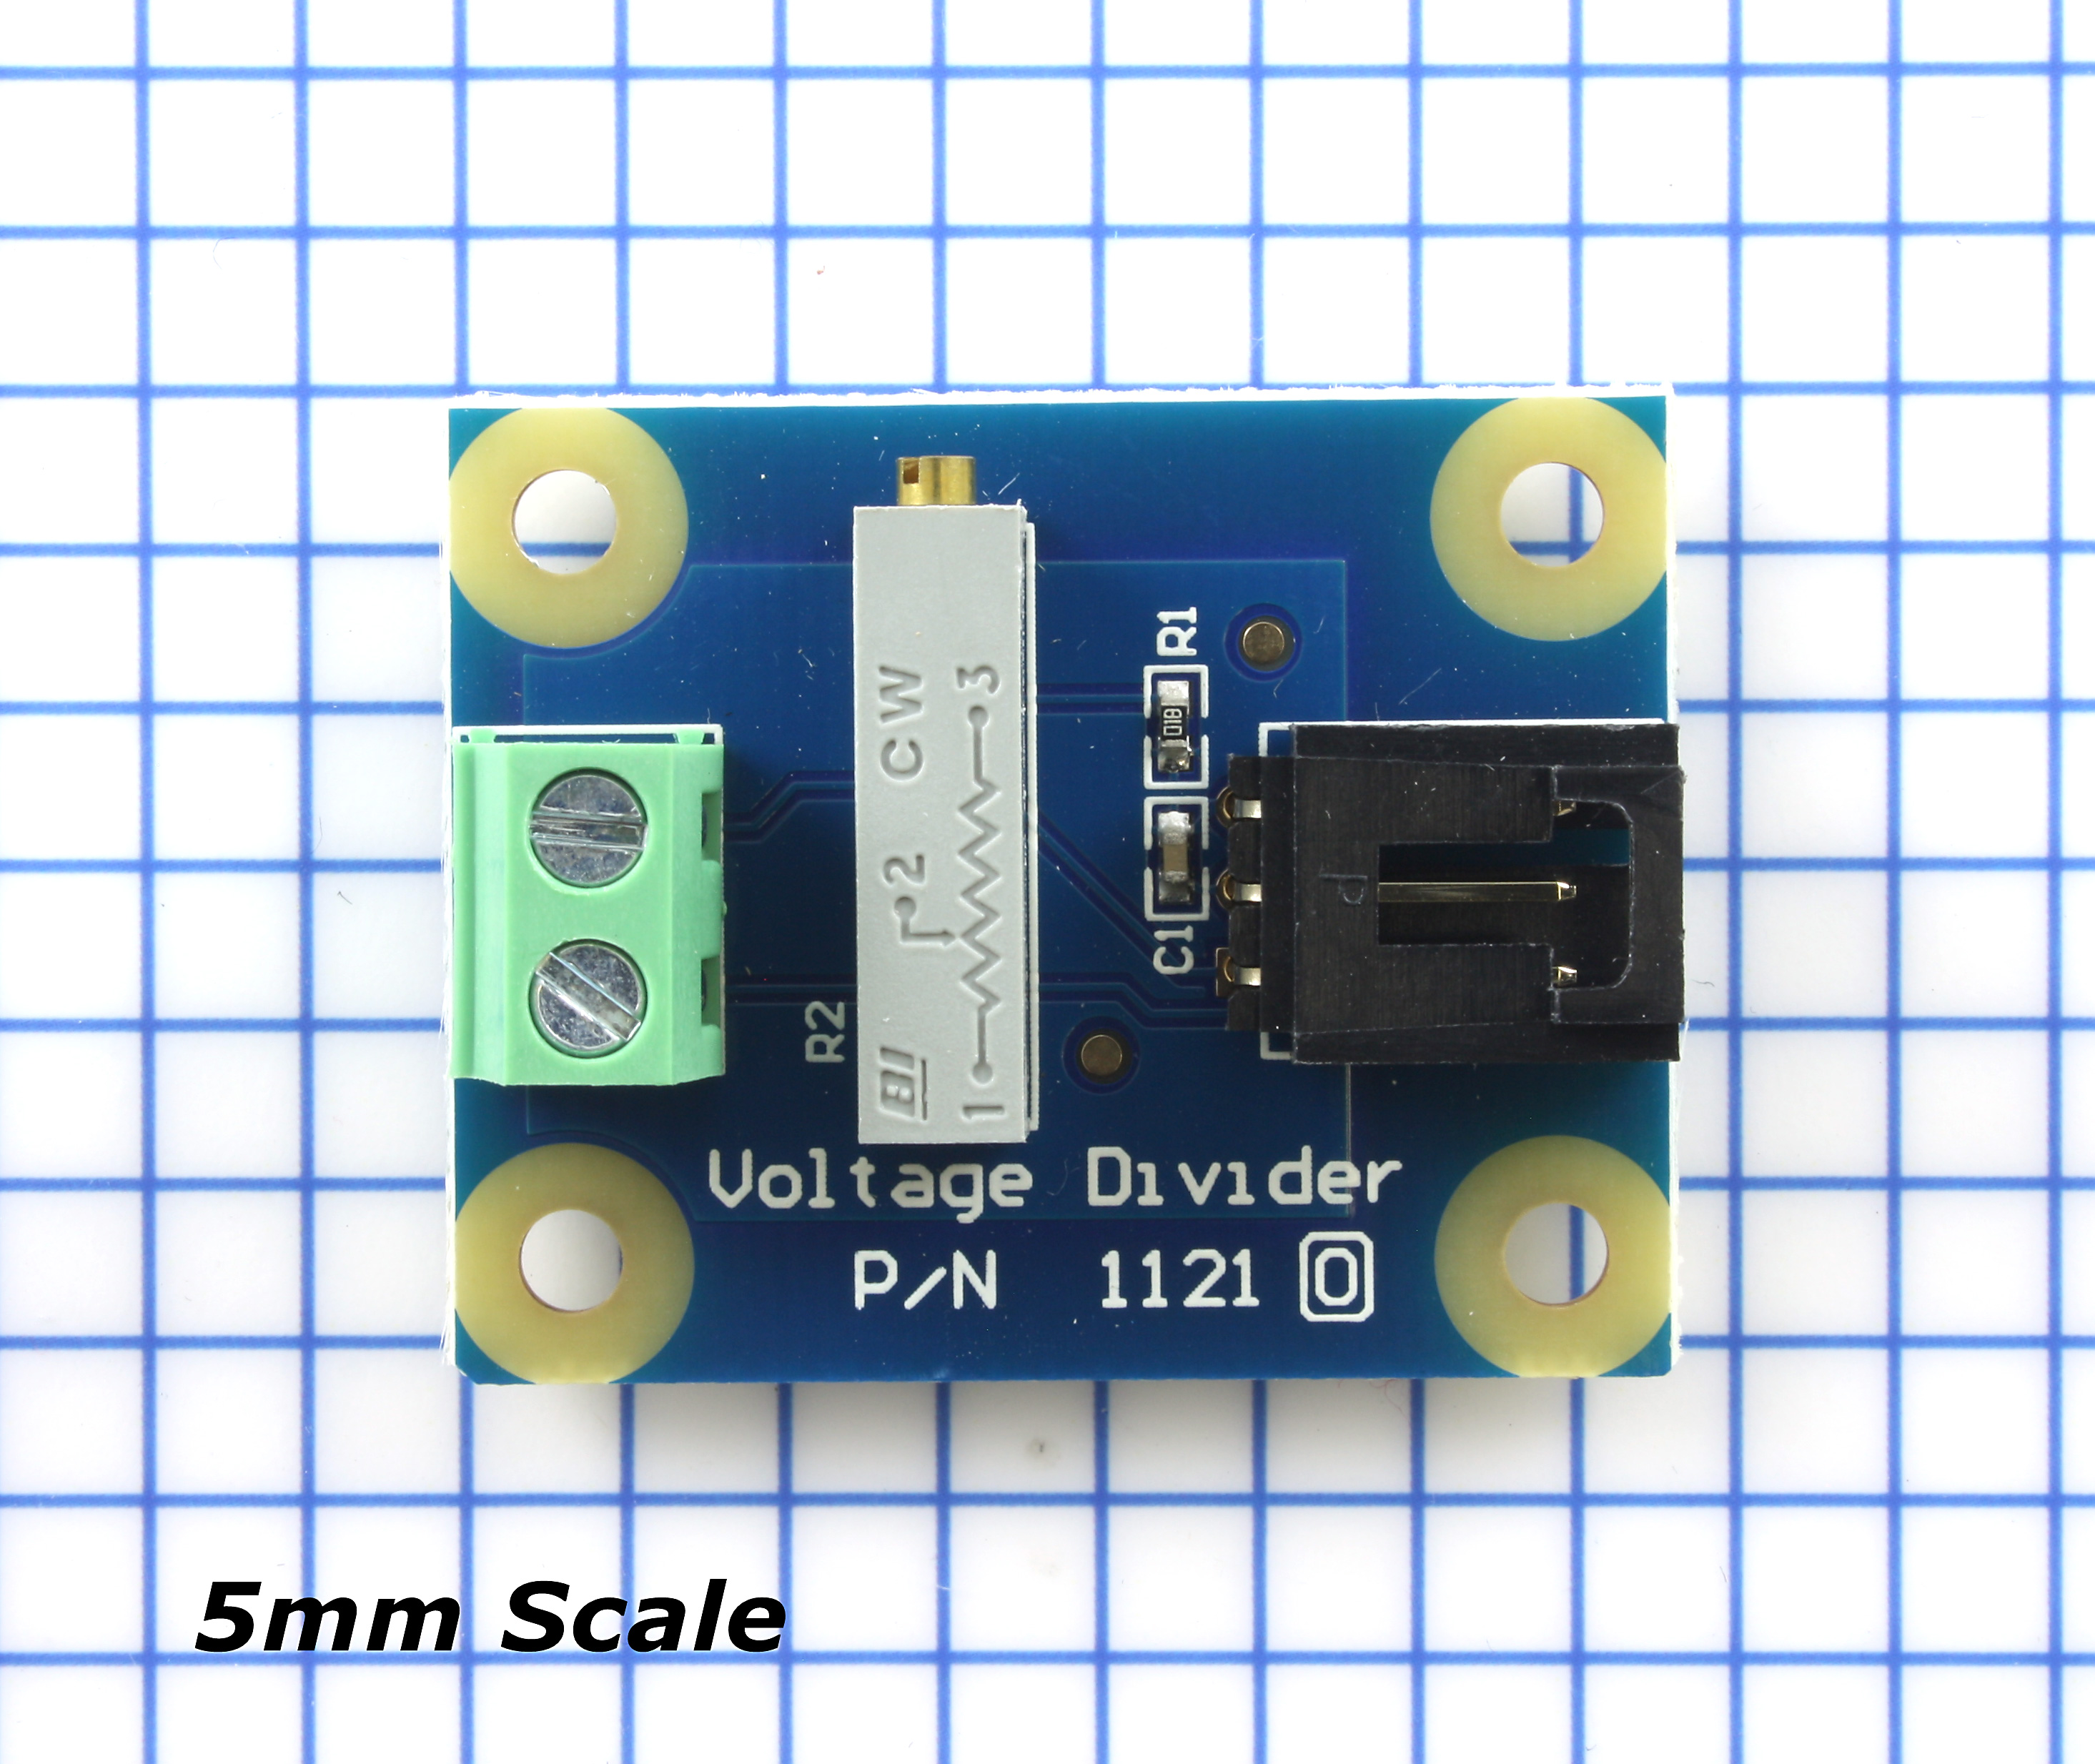 Voltage Divider 1121 0 At Phidgets In Series And Parallel Circuit Electrical